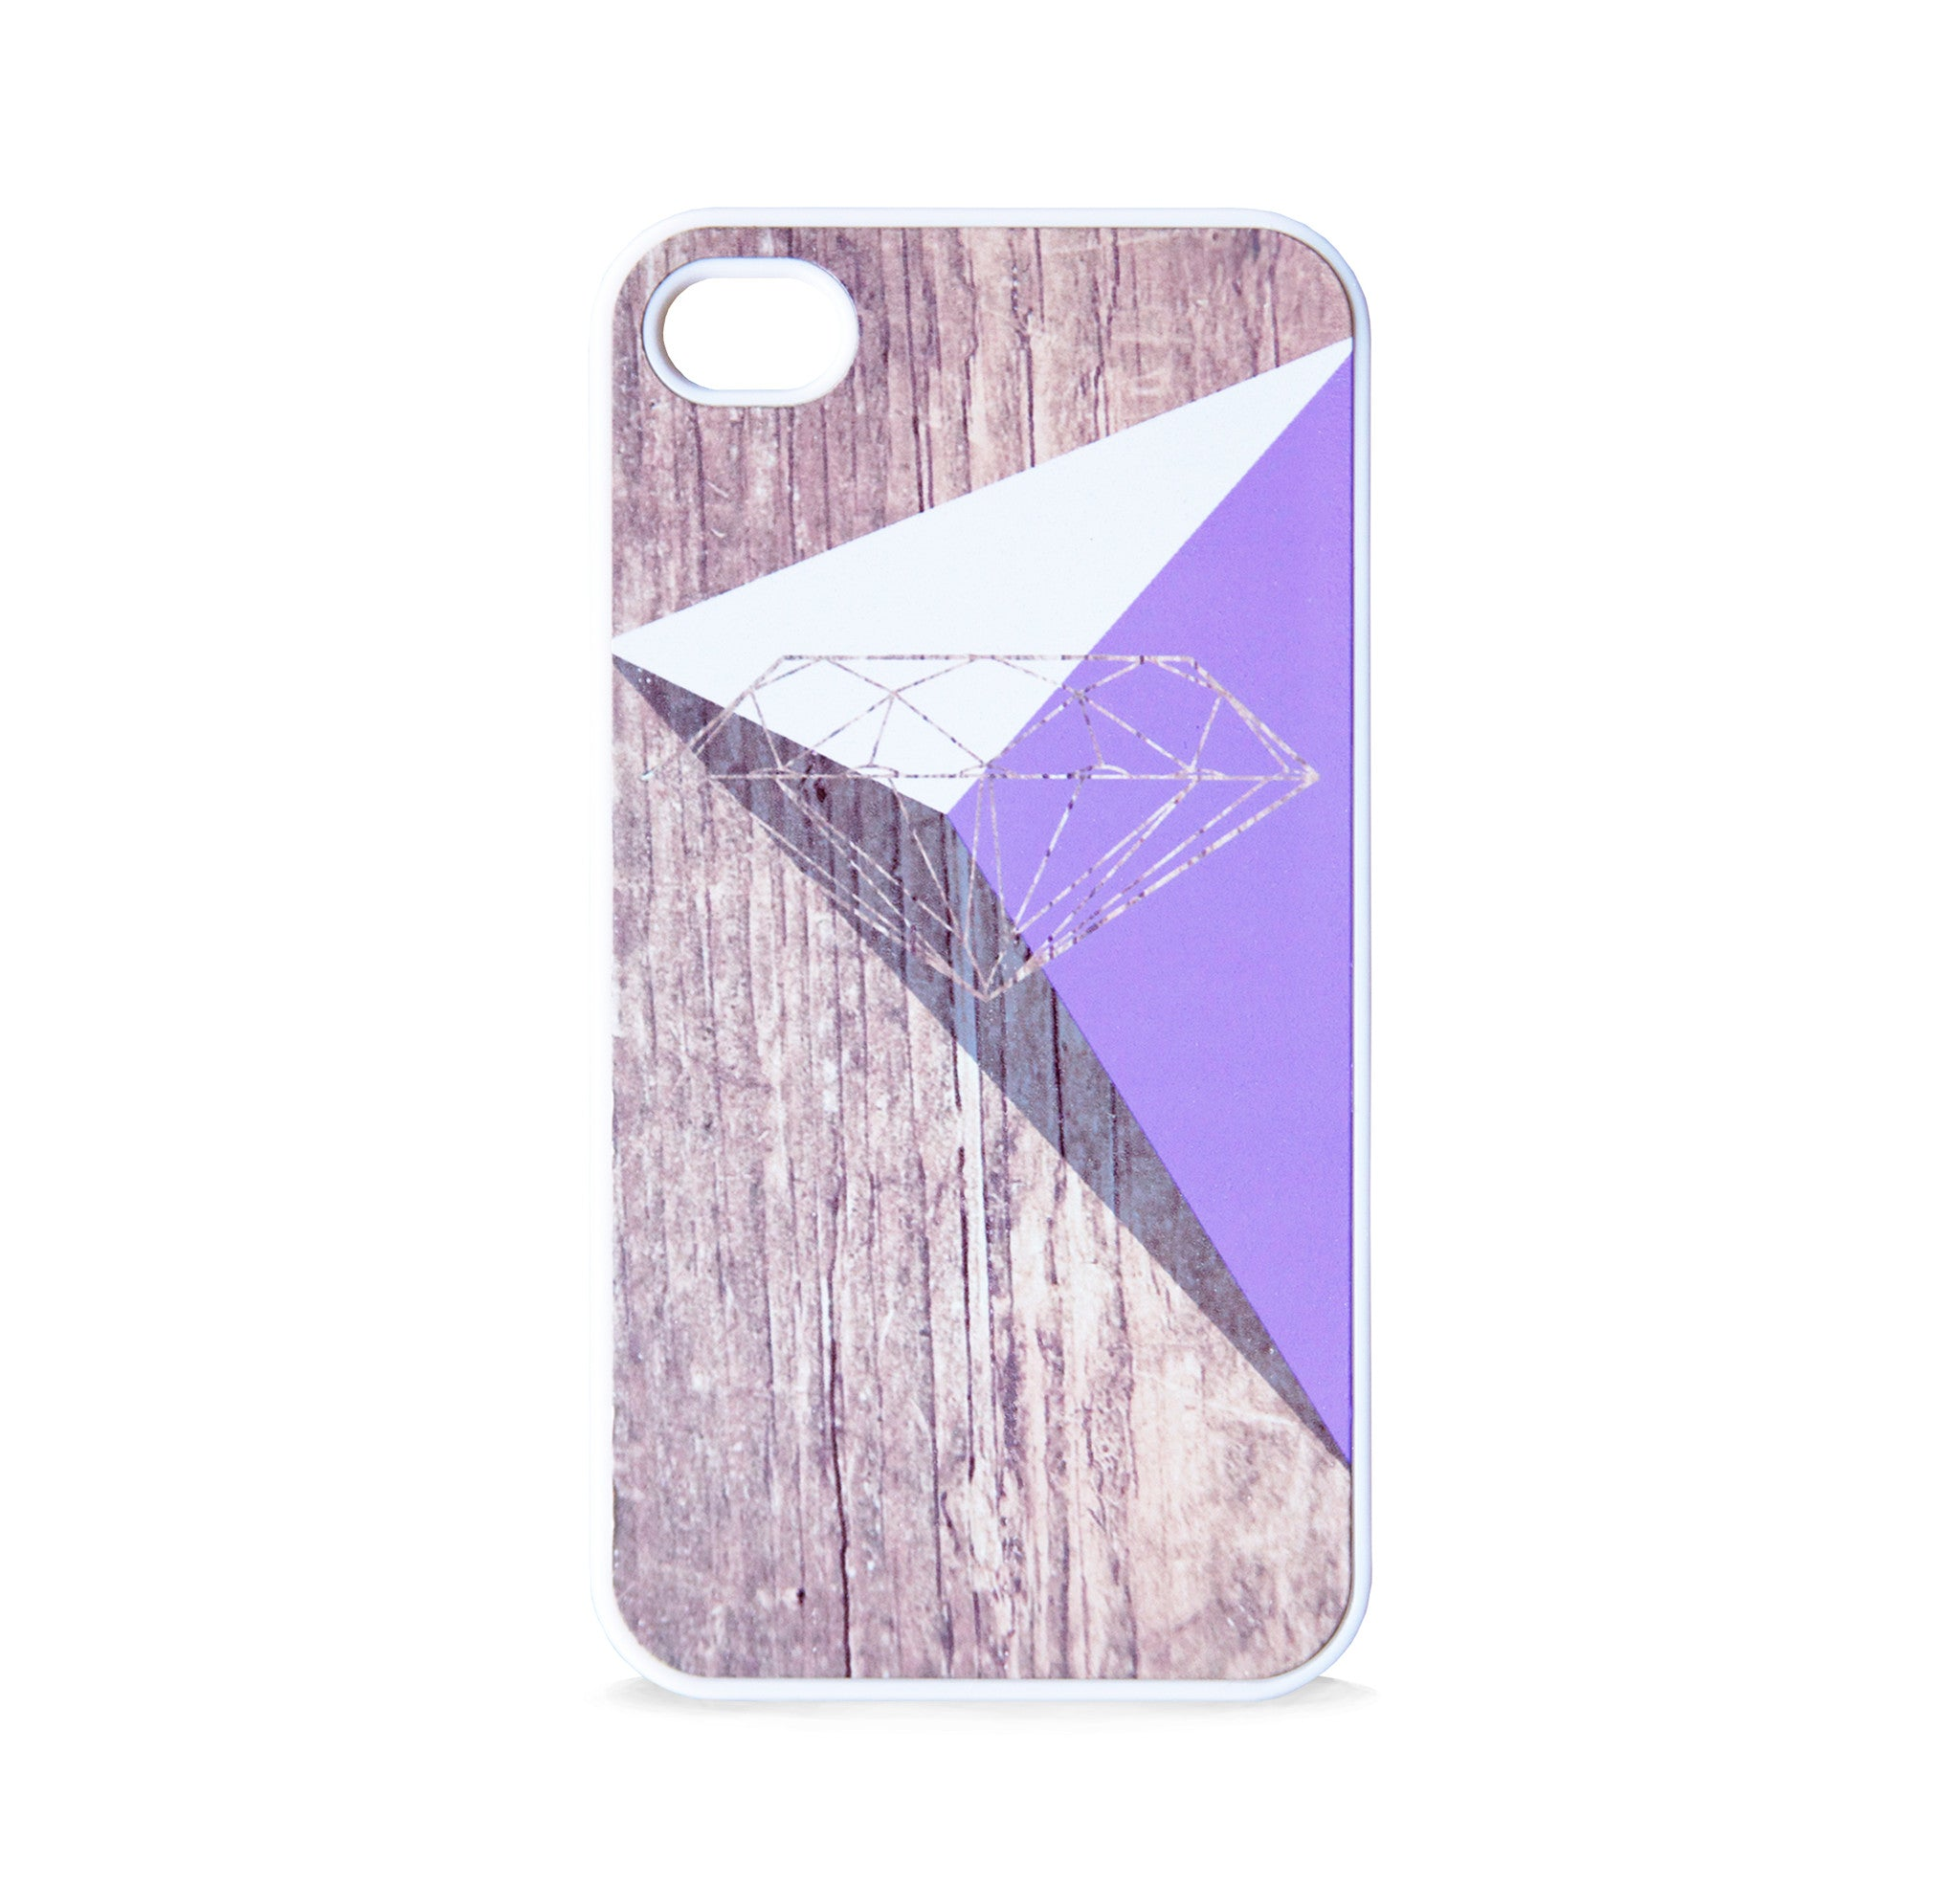 DIAMOND TRI WHT PPL FOR IPHONE 4/4S